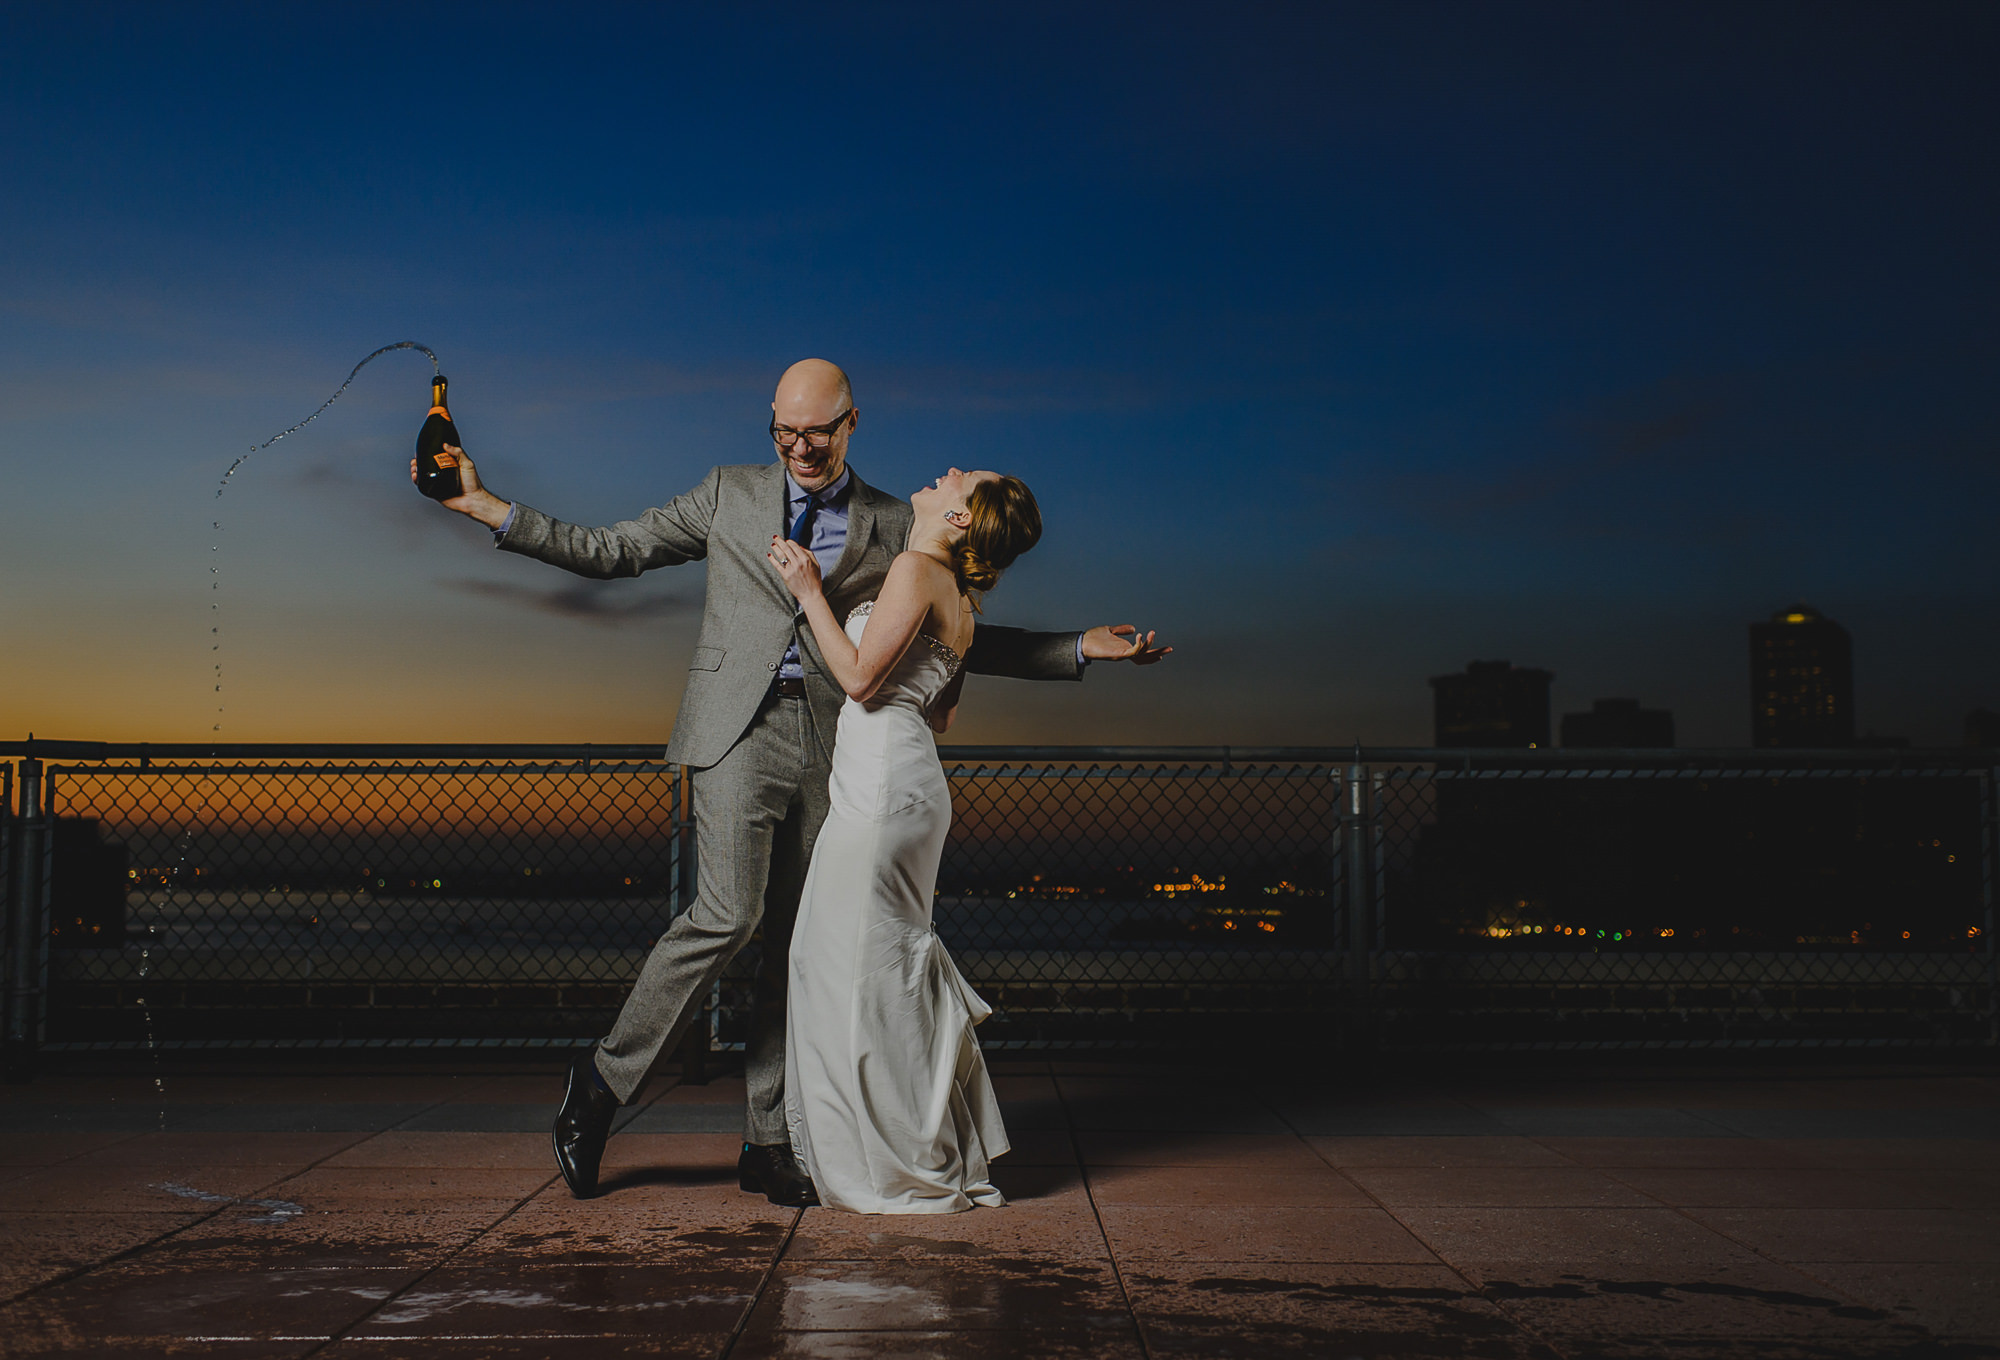 Fun photo of groom holding bottle of champagne dancing with bride, photo by The Brenizers